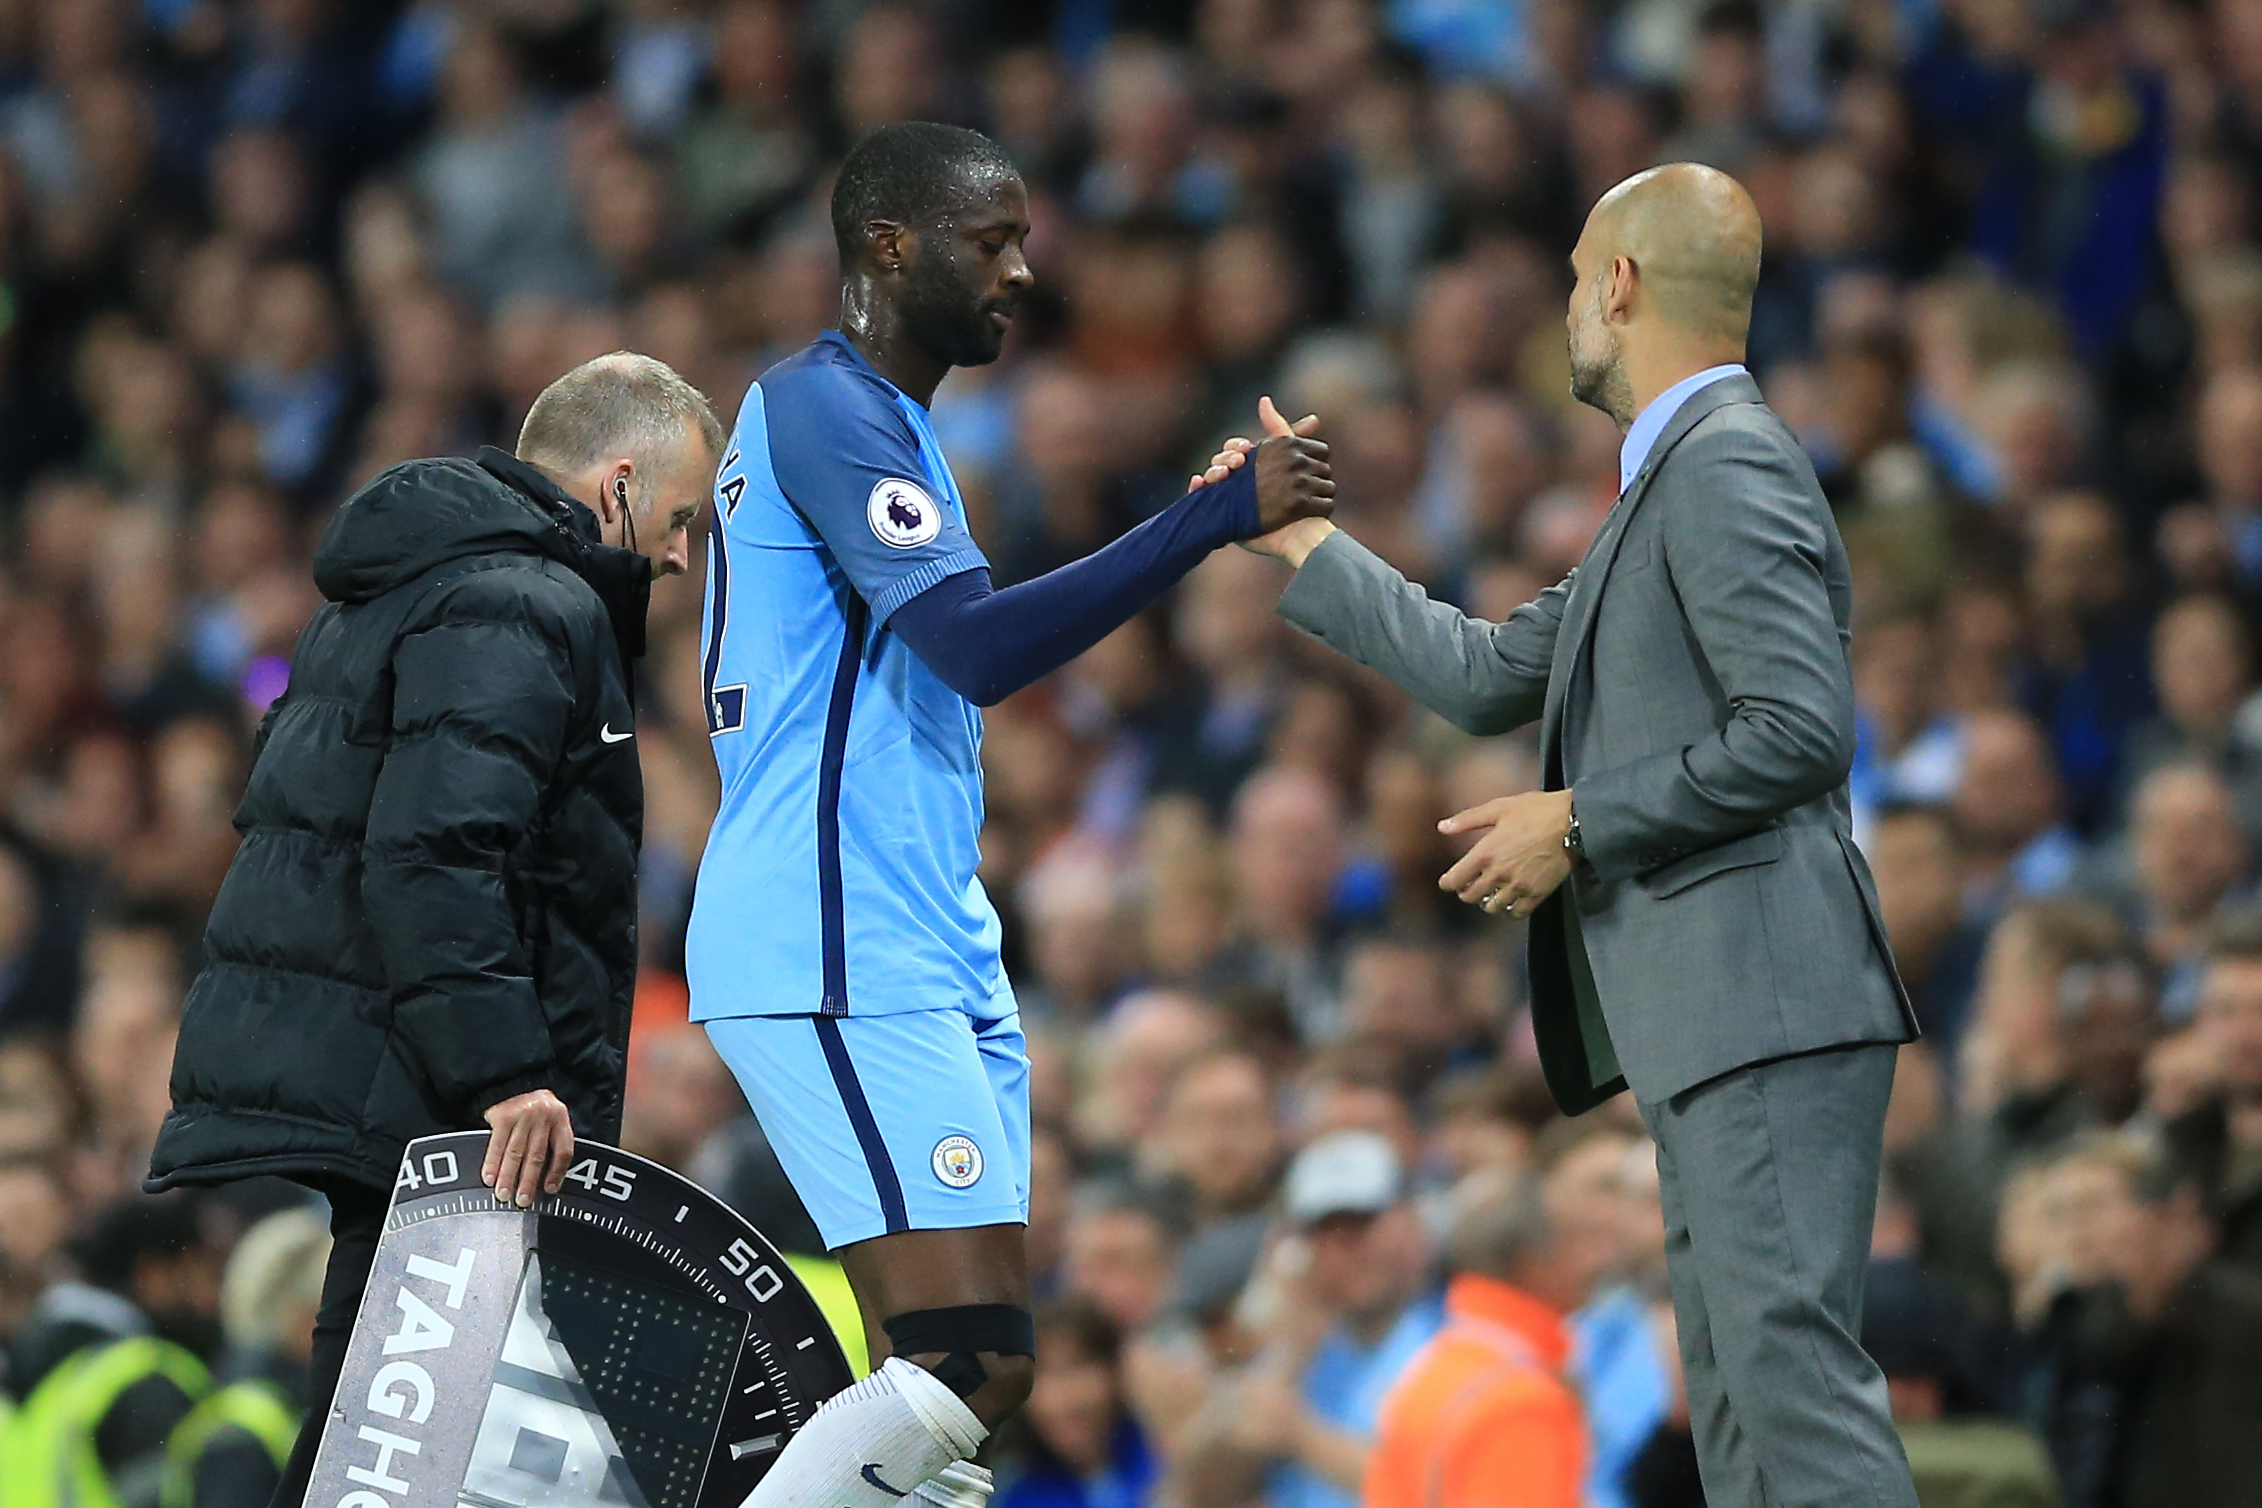 Guardiola and Toure shake hands. Image PA